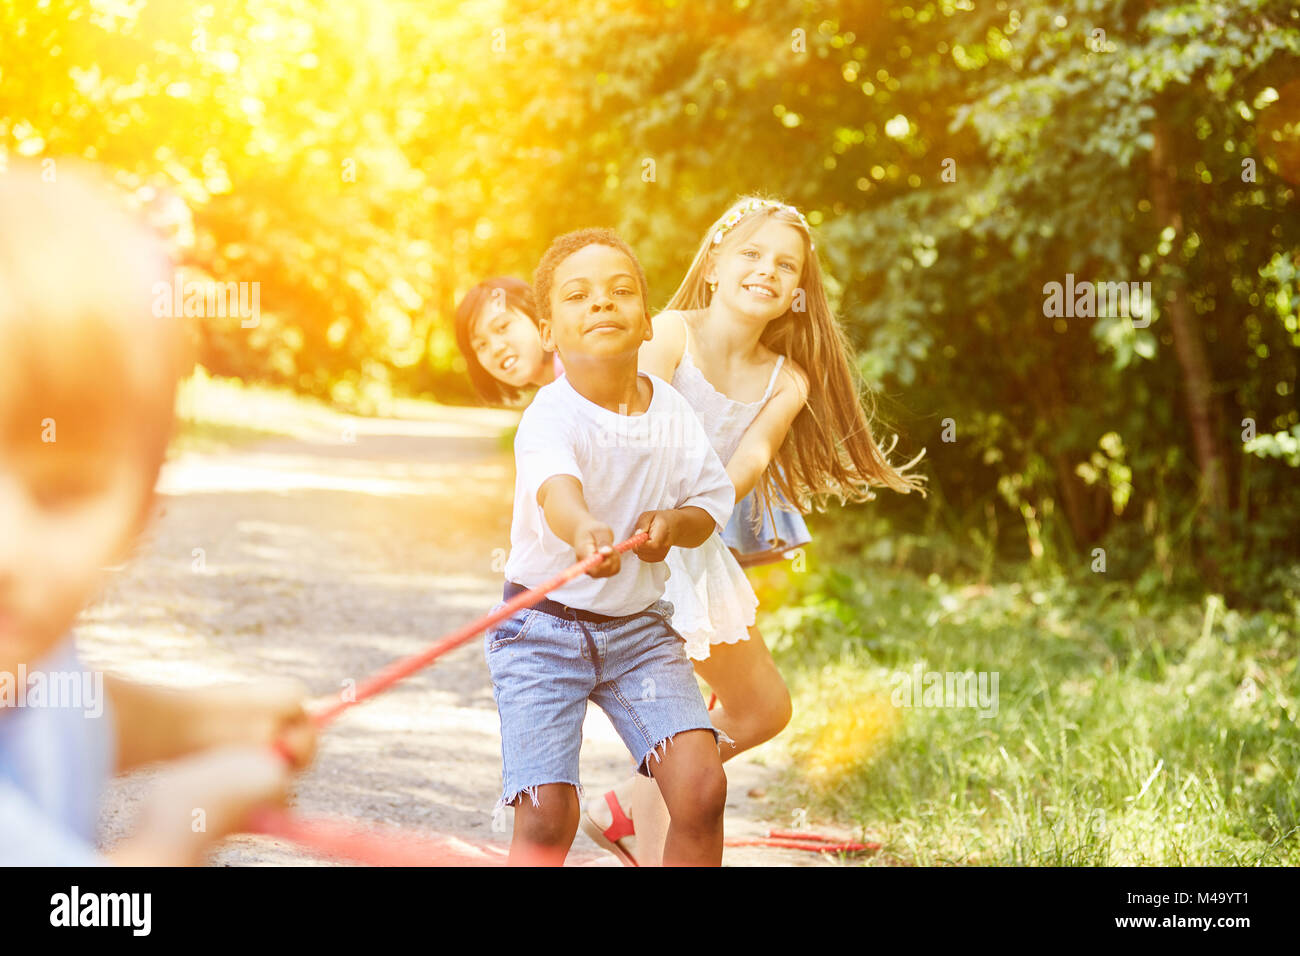 Group of children in tug of war as a team at childrens birthday party in summer - Stock Image